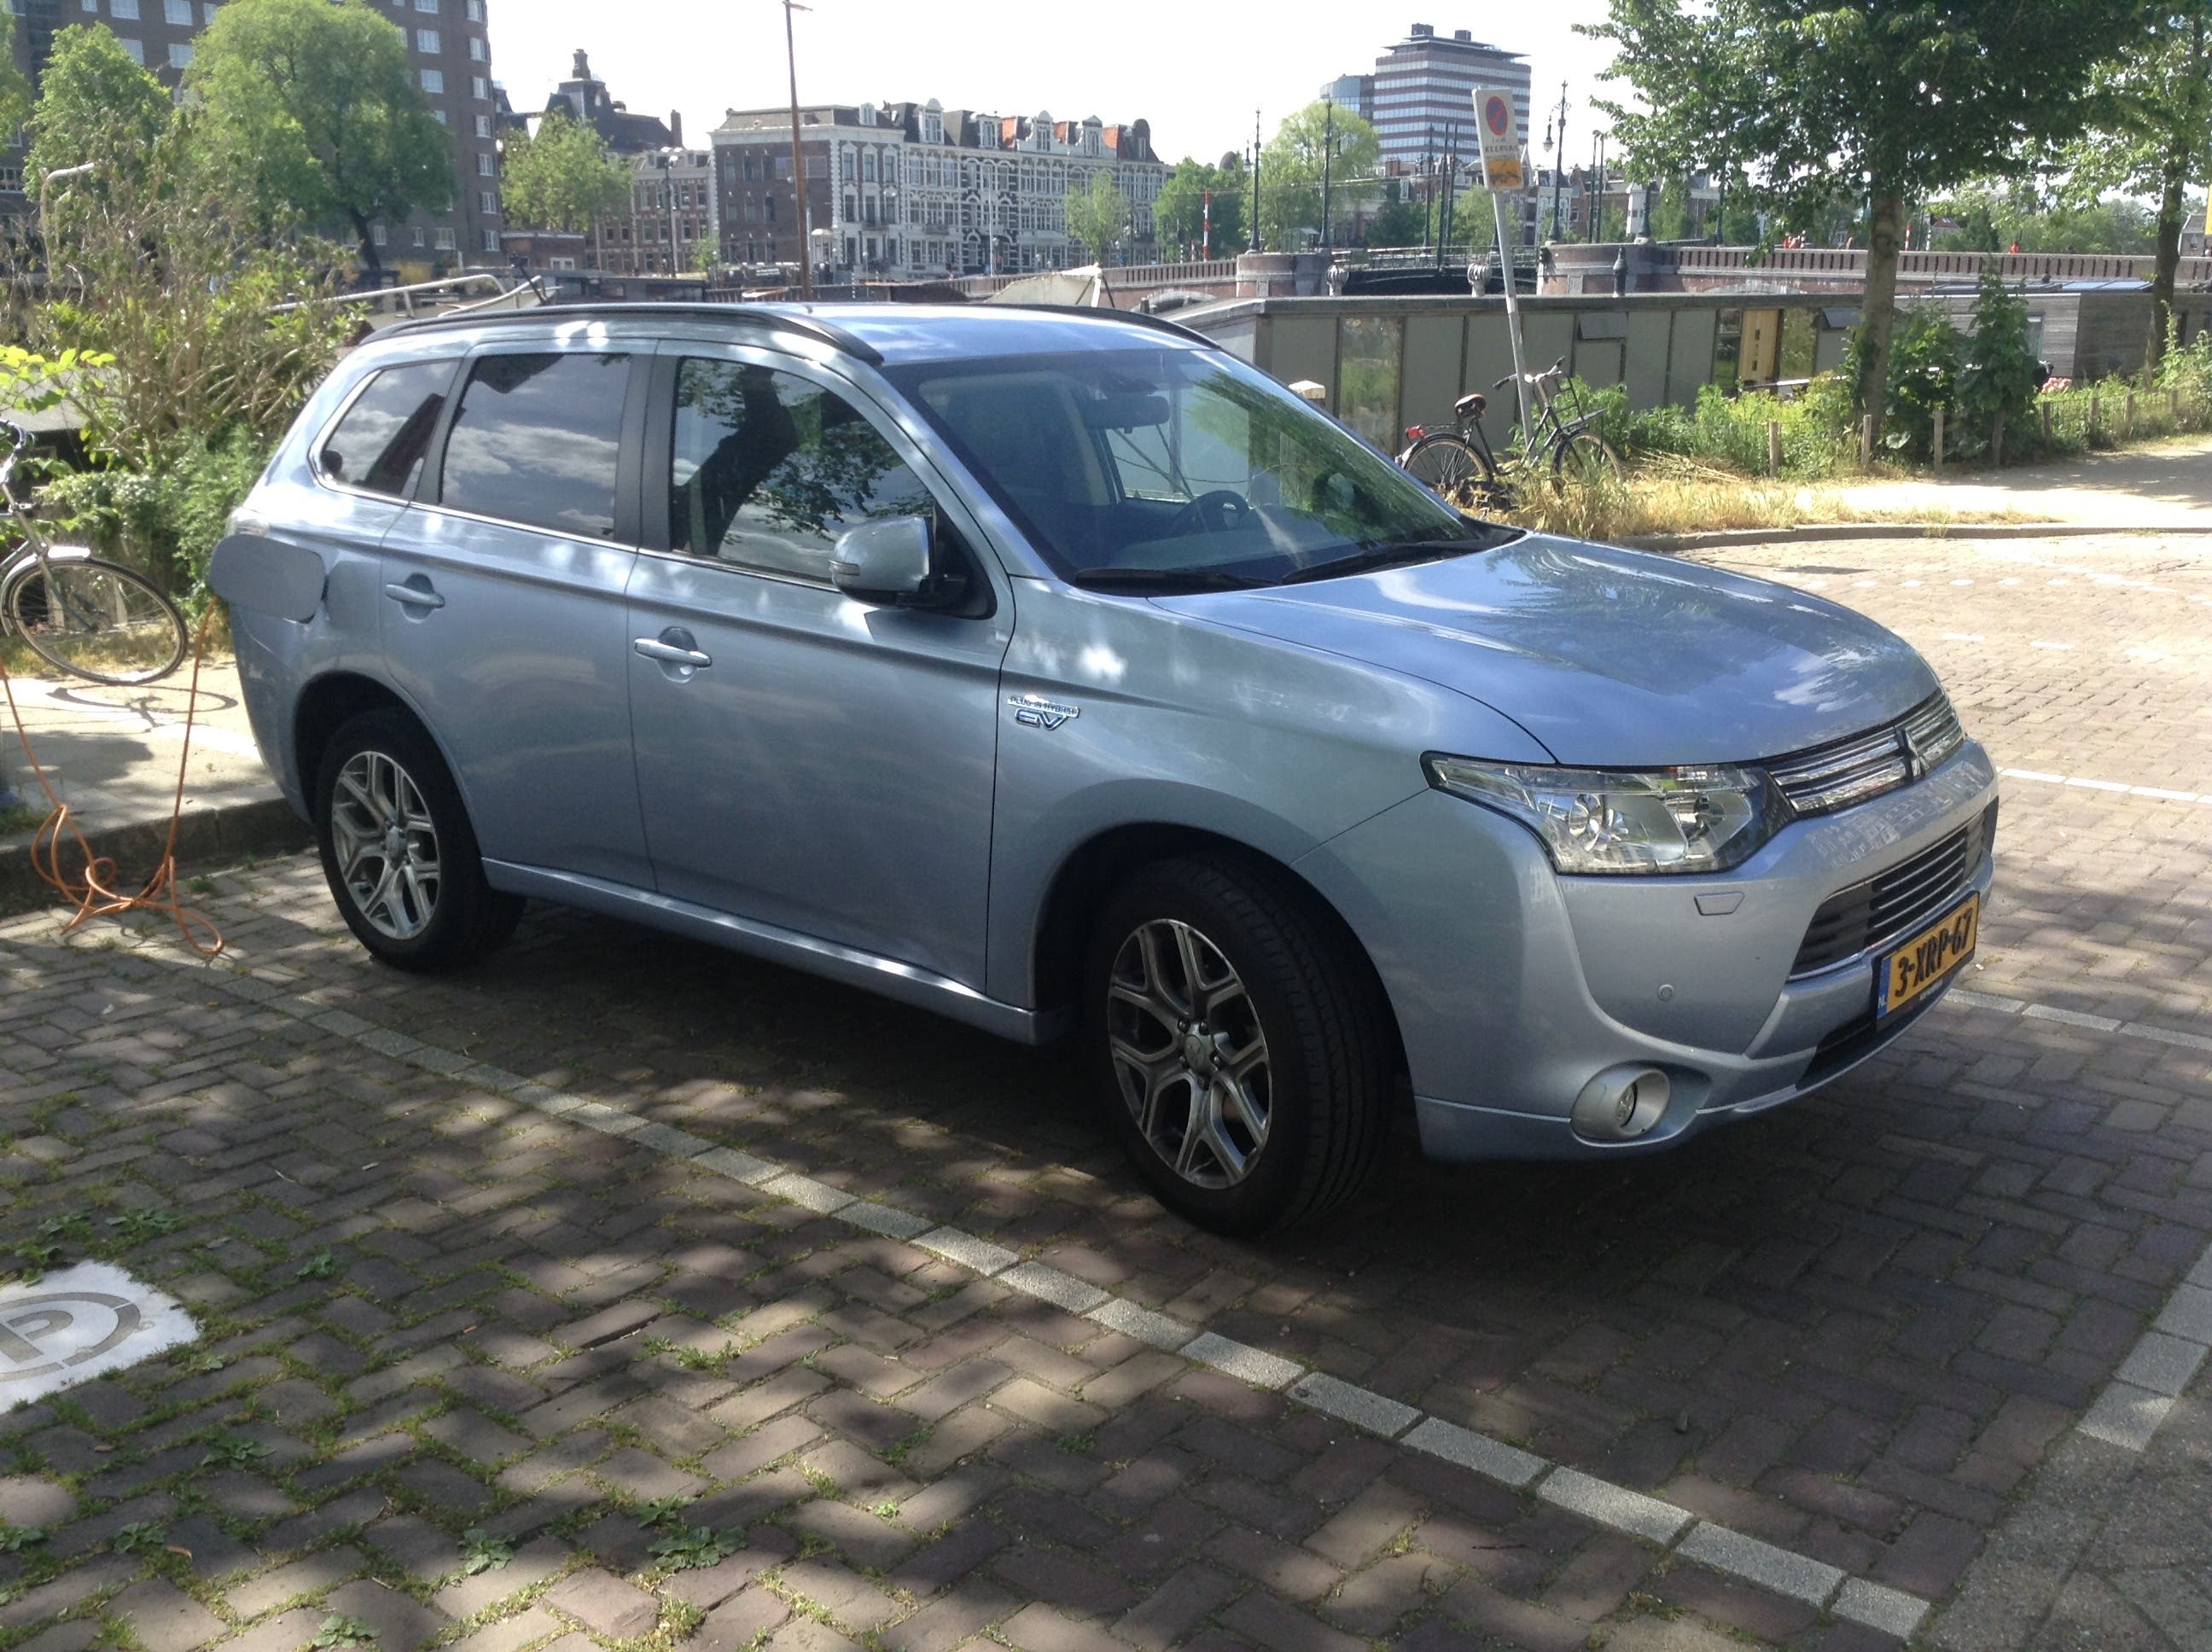 Over 100,000 Mitsubishi Outlander PHEVs Have Now Been Sold